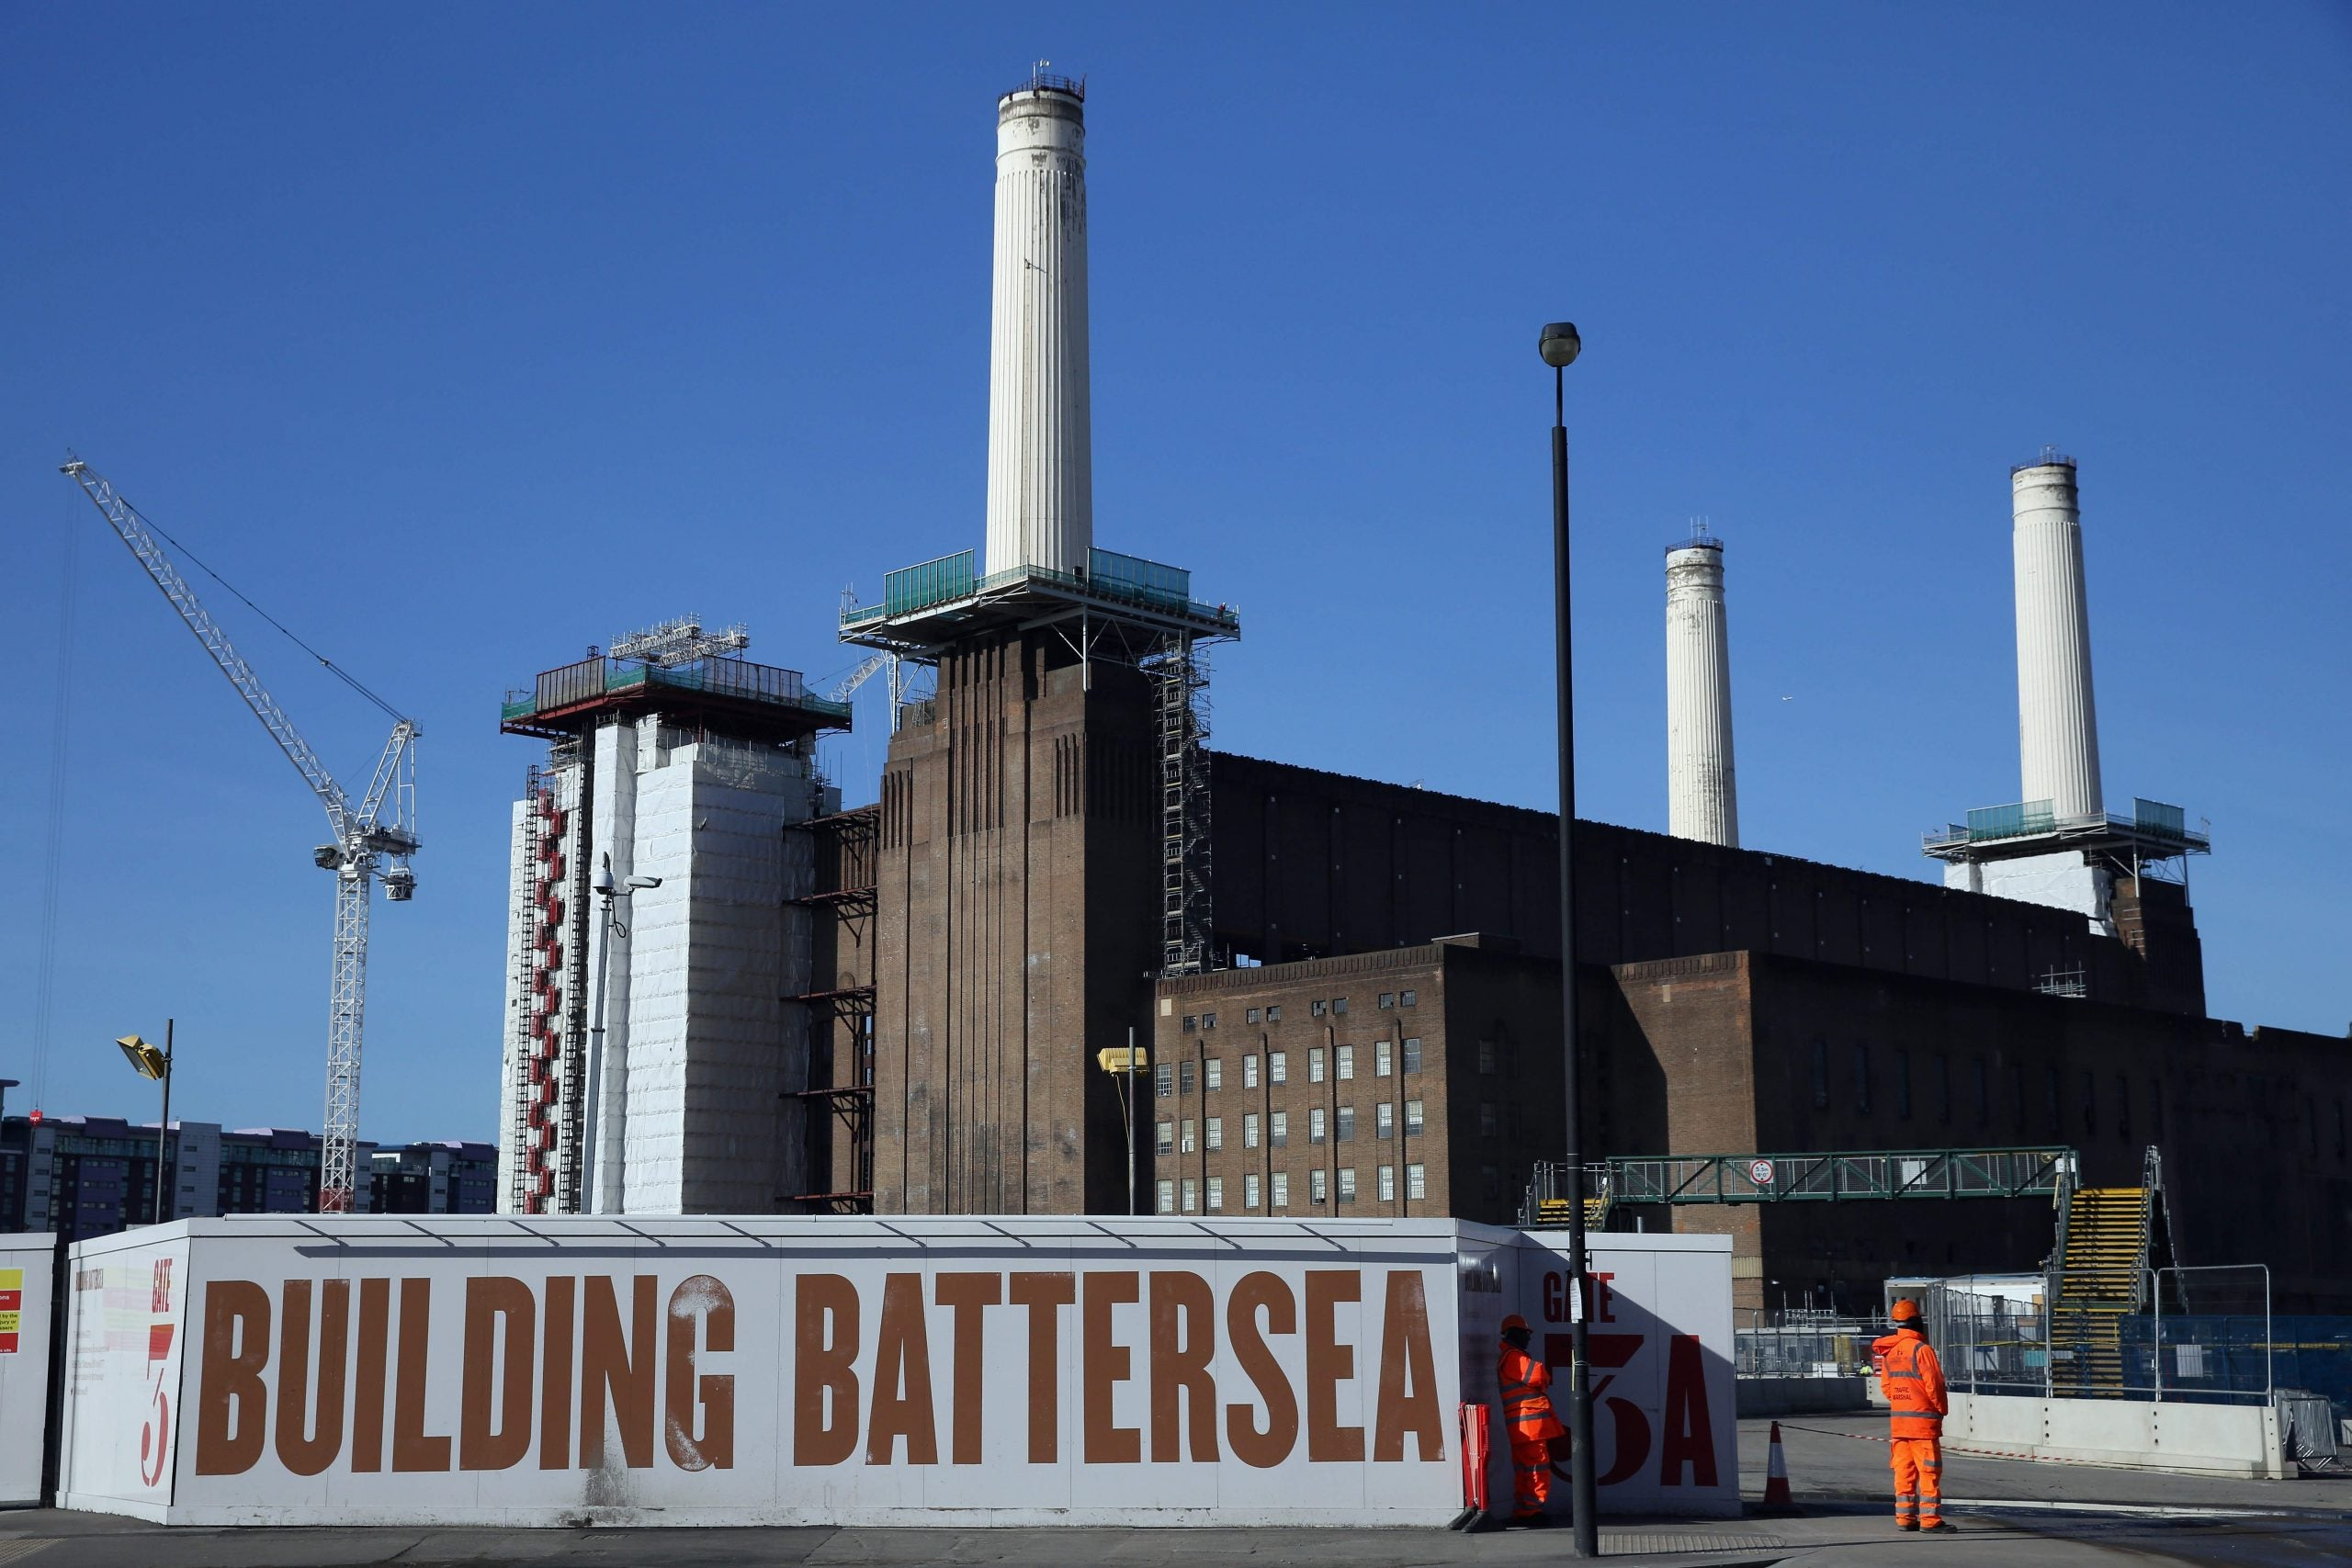 The tale of Battersea power station shows how affordable housing is lost